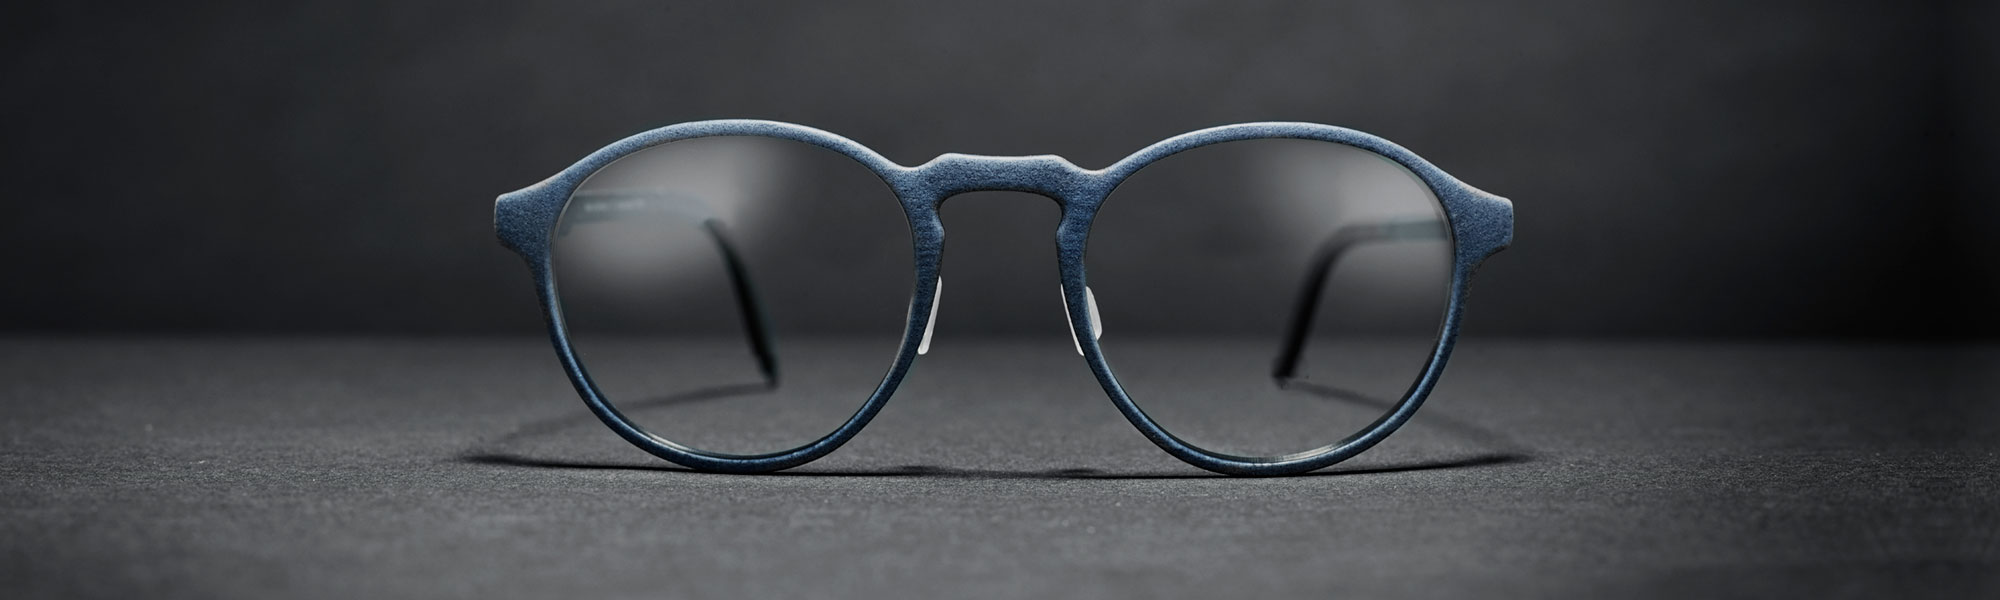 3D printed eyewear is the future   Tailor Made Glasses & Bespoke Glasses